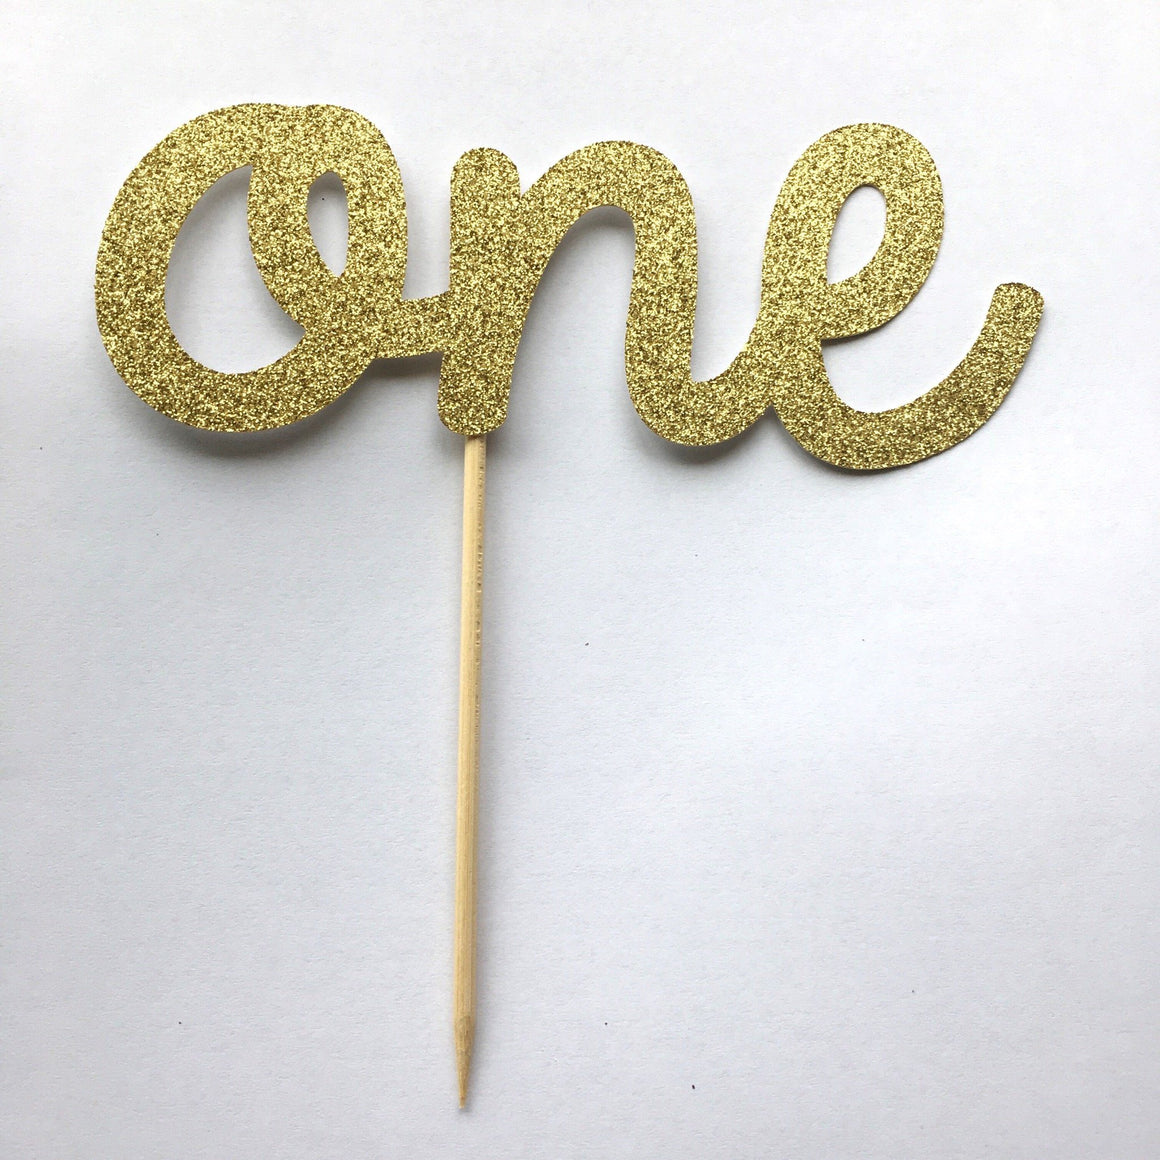 CAKE TOPPER - ONE GOLD GLITTER